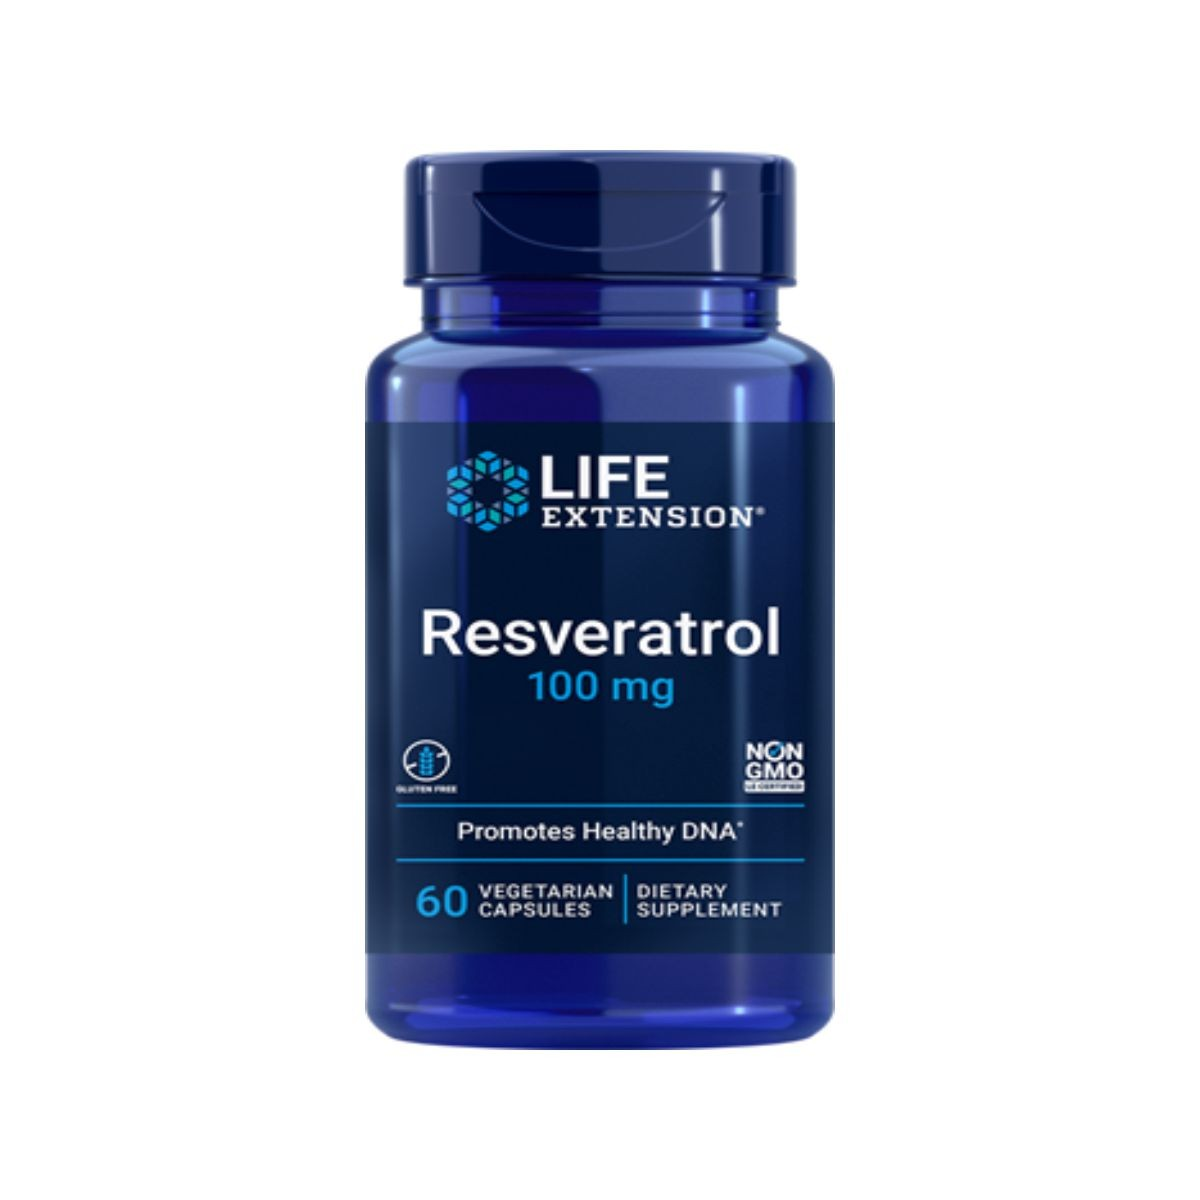 Resveratrol 100mg 60Caps - Life Extension